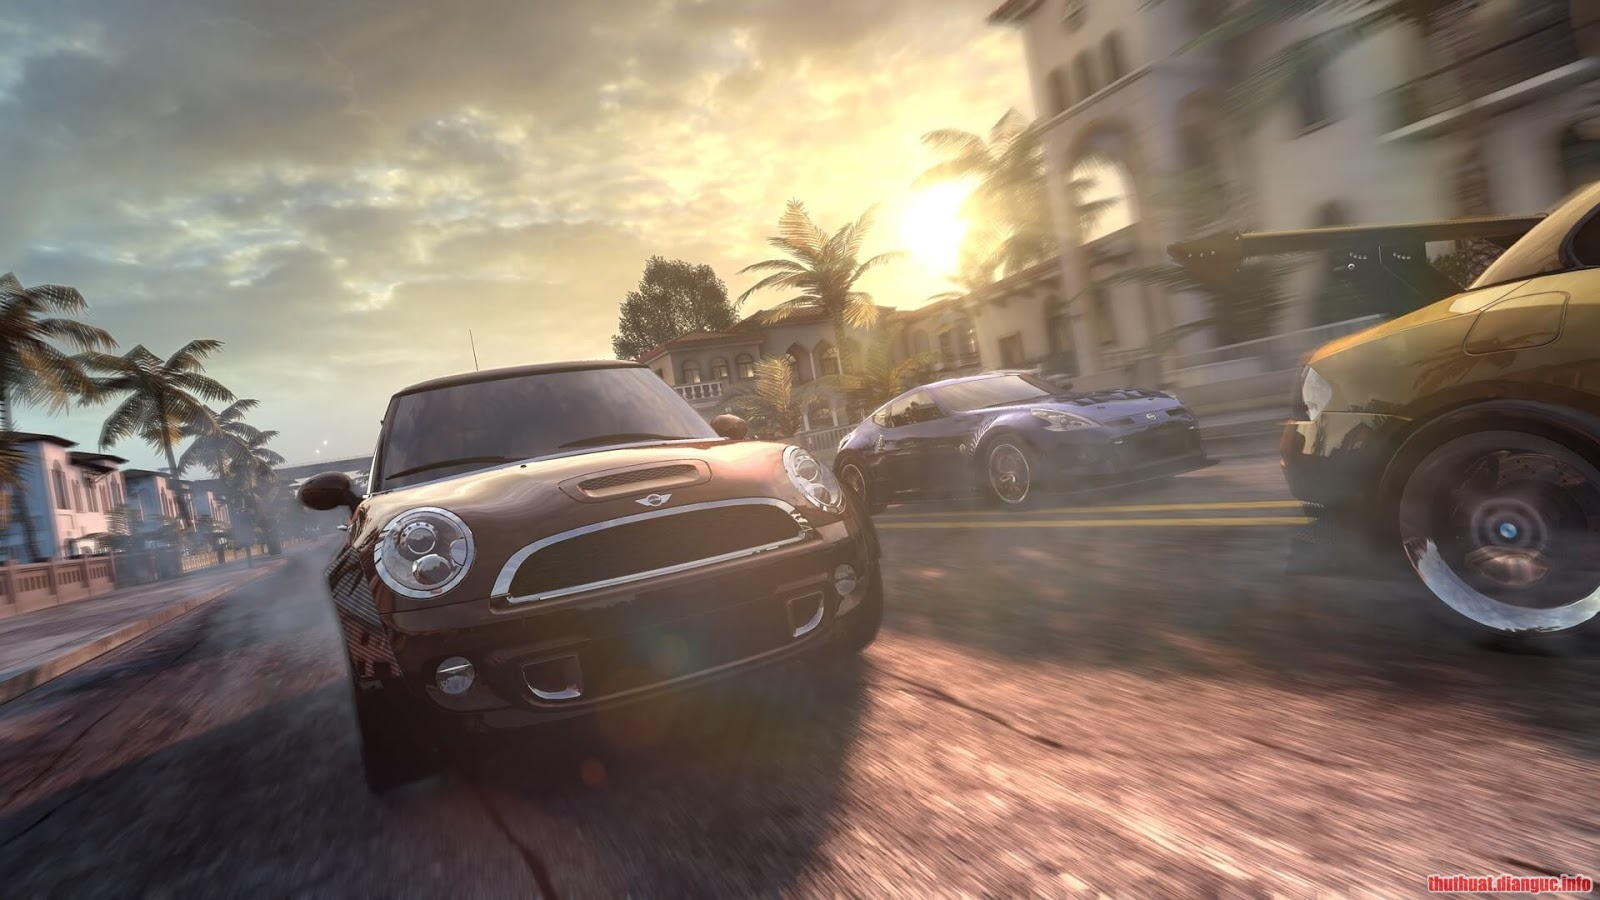 Download Game The Crew Full Crack, game đua xe hay nhất, Game The Crew, Game The Crew free download, Game The Crew full crack,The Crew, The Crew free download